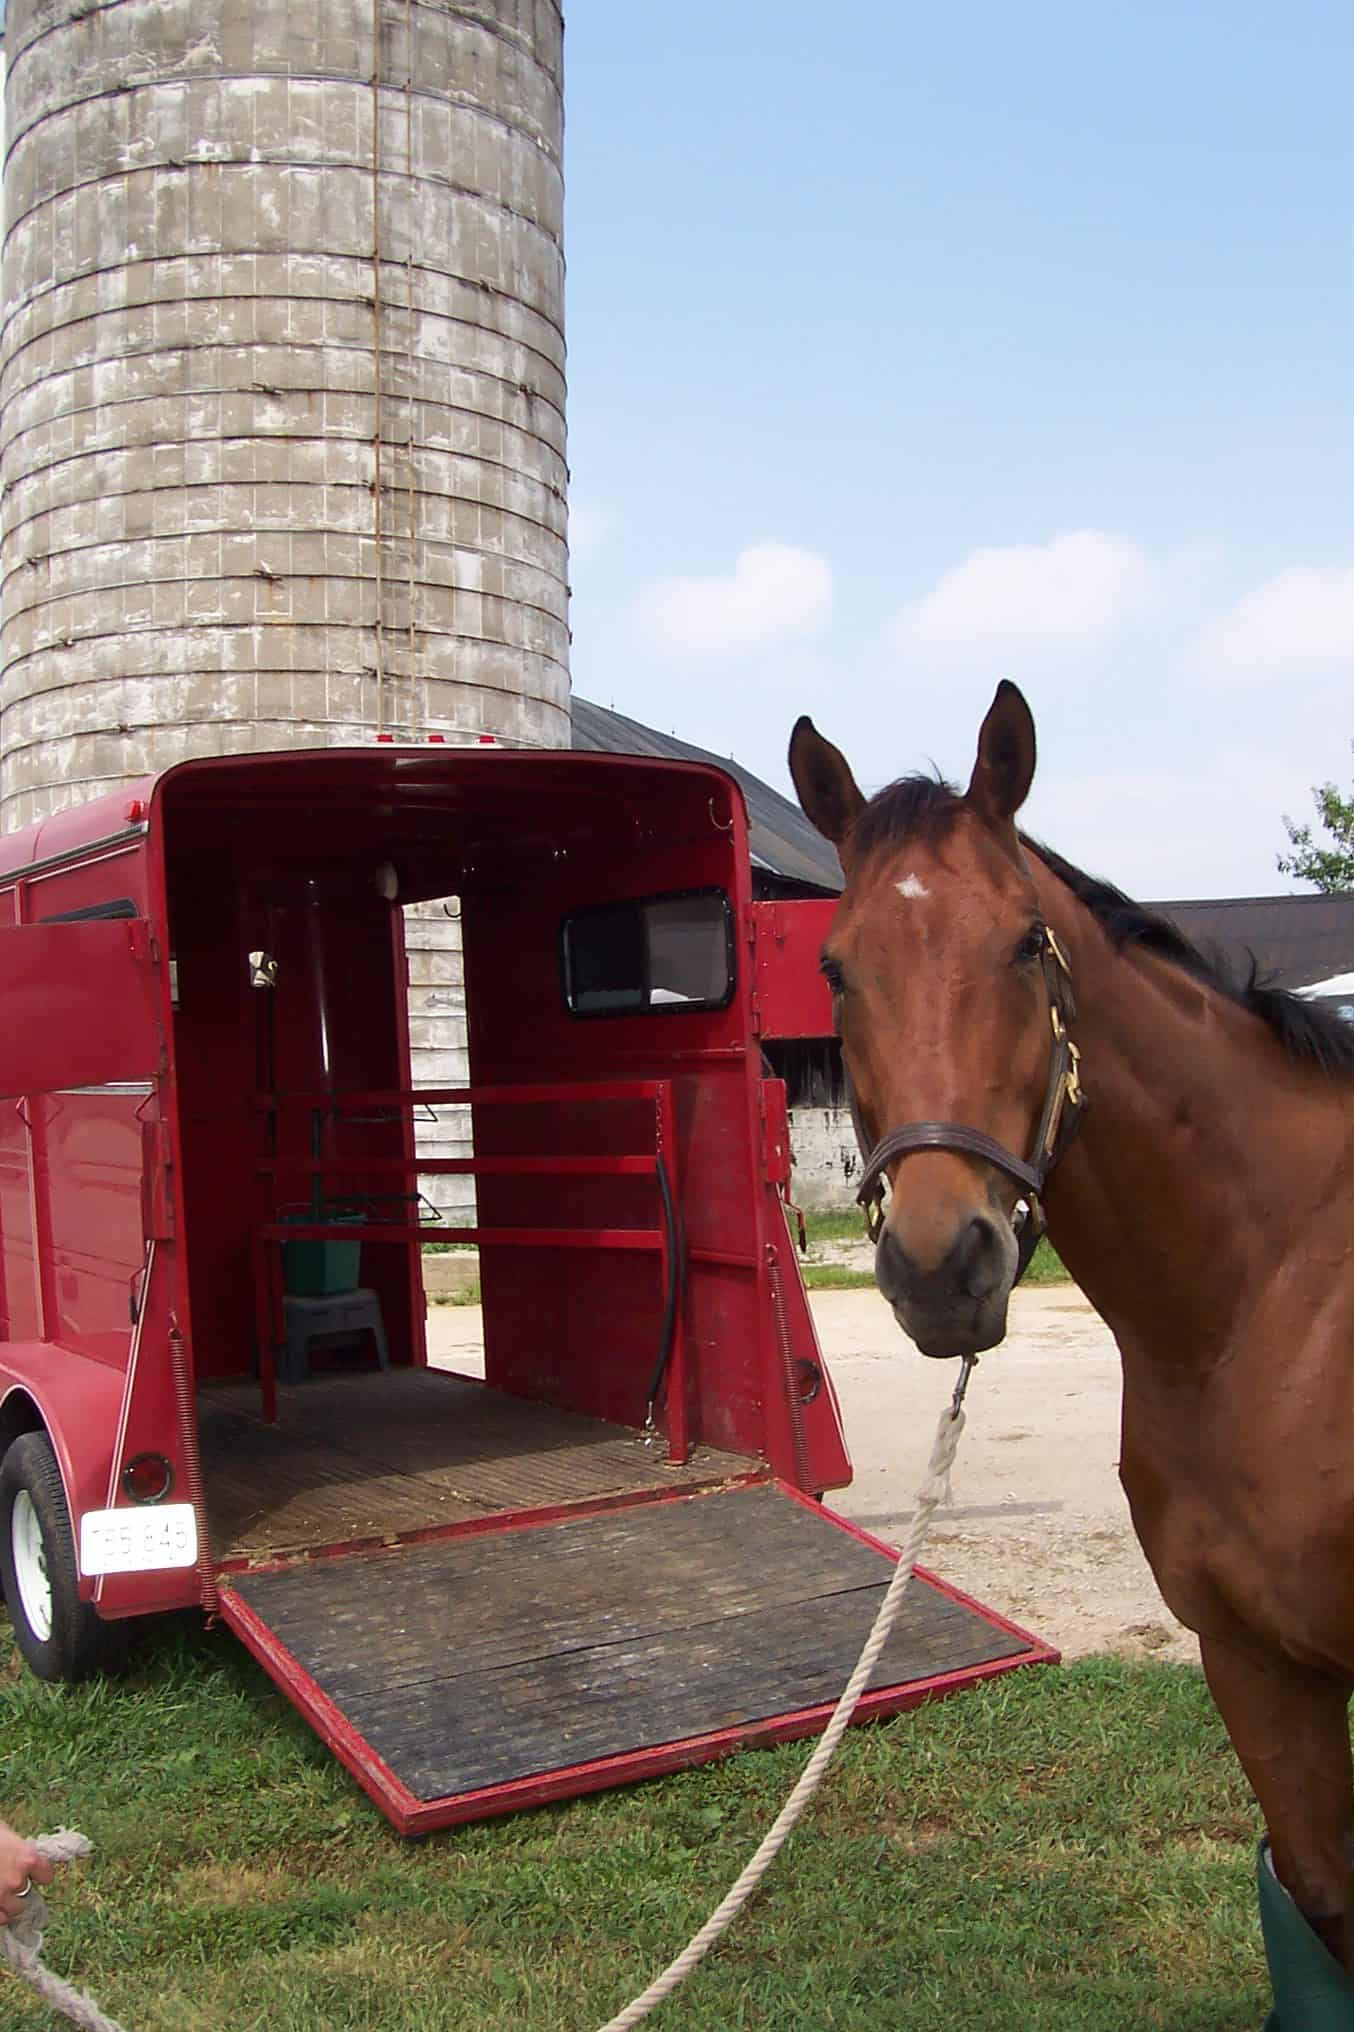 How Do I Get My Horse to Load into a Trailer?